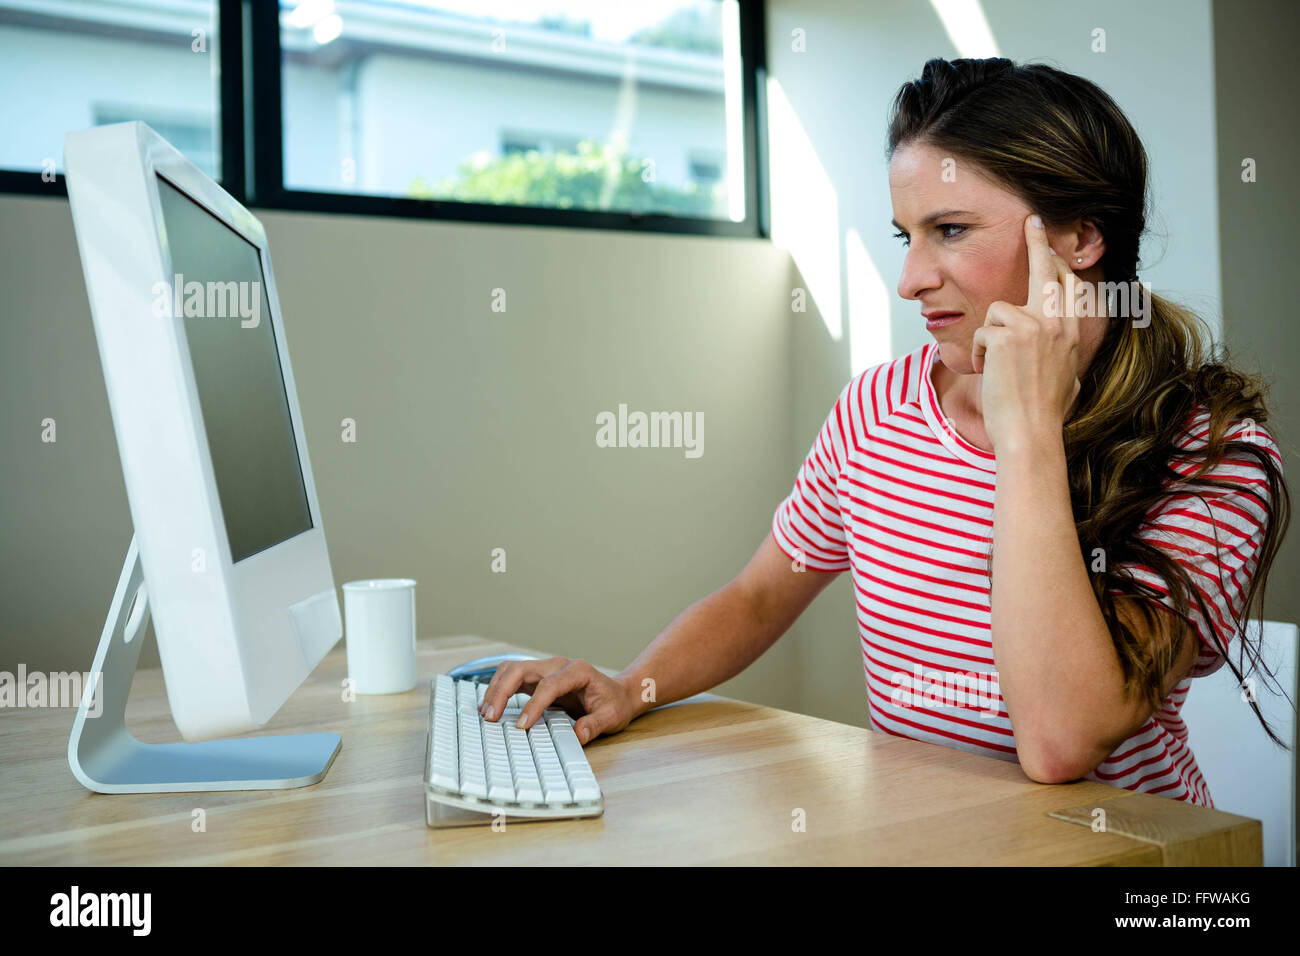 woman looking disgruntled sitting at her computer - Stock Image